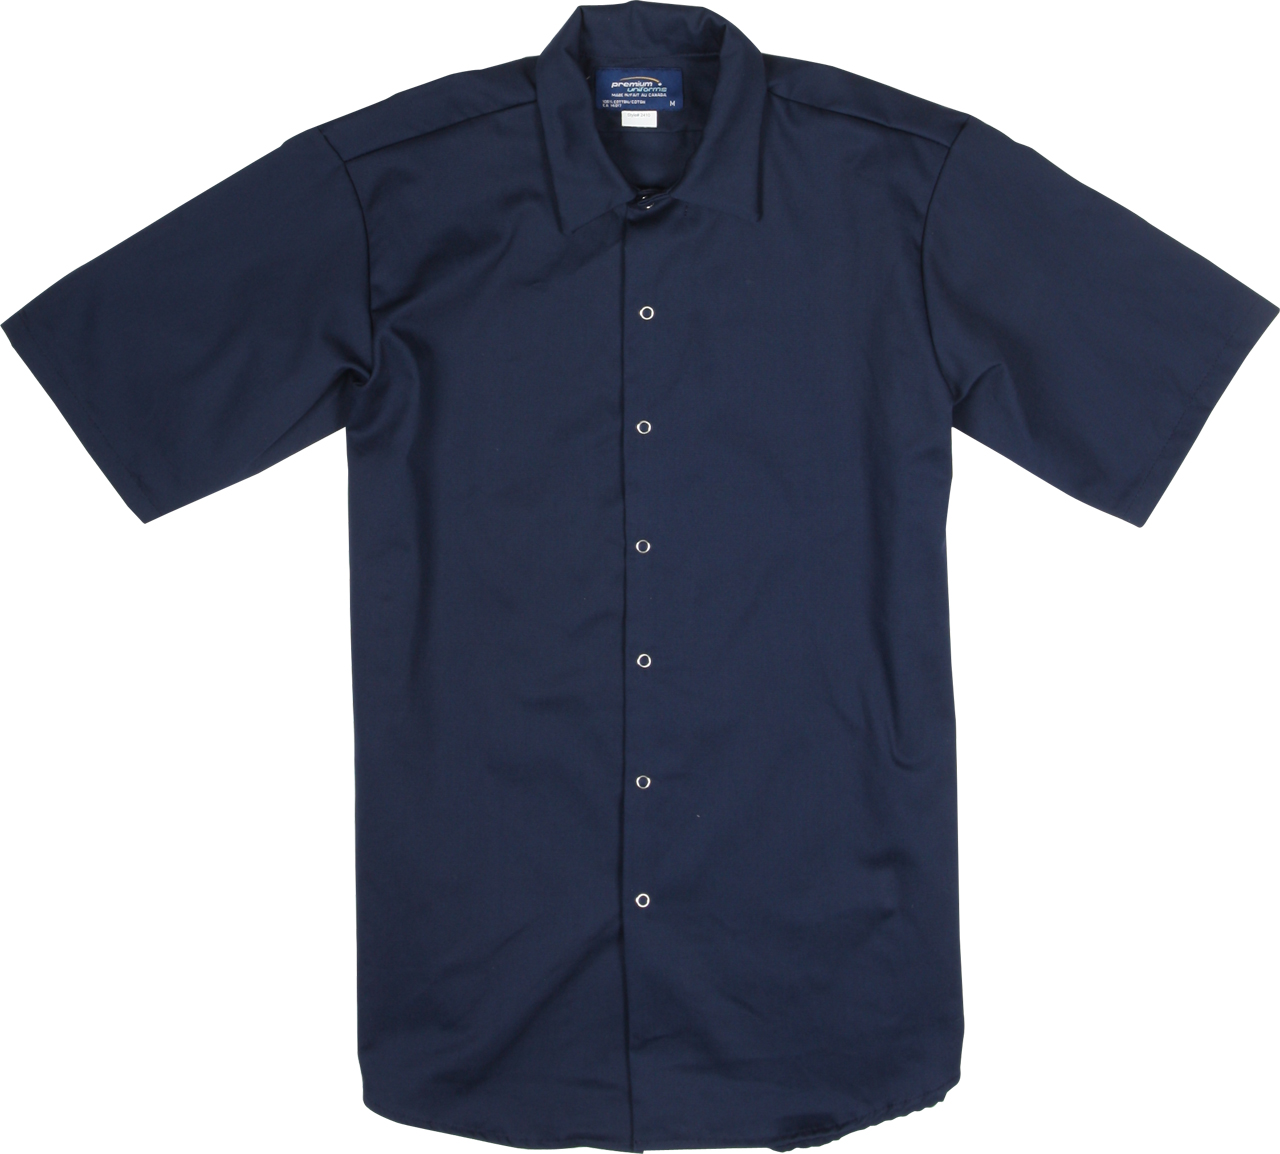 Picture of Premium Uniforms 100% Cotton Short Sleeve Food Industry Shirt